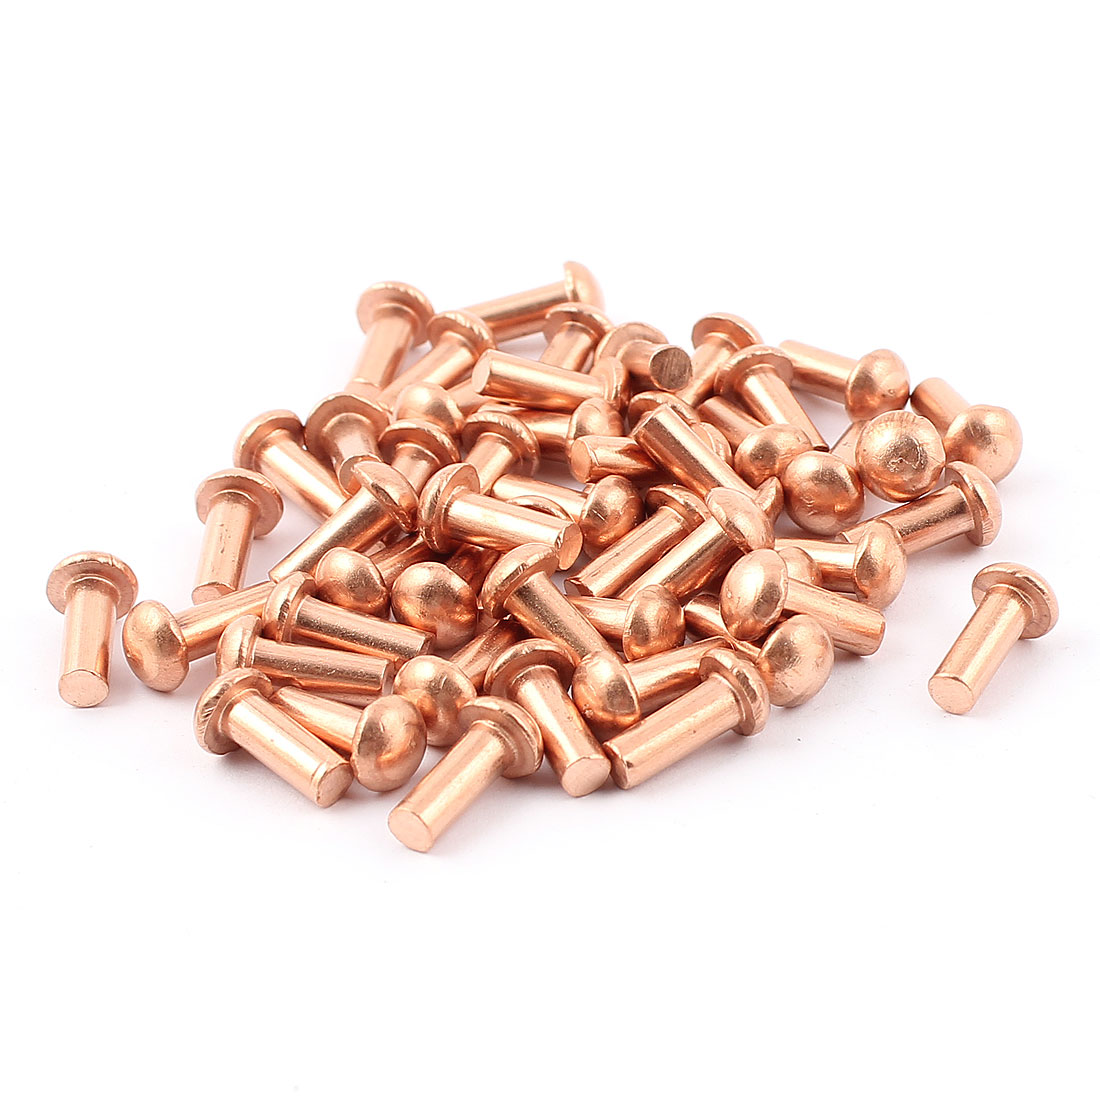 "50 Pcs 5/32"" x 25/64"" Round Head Copper Solid Rivets Fasteners"